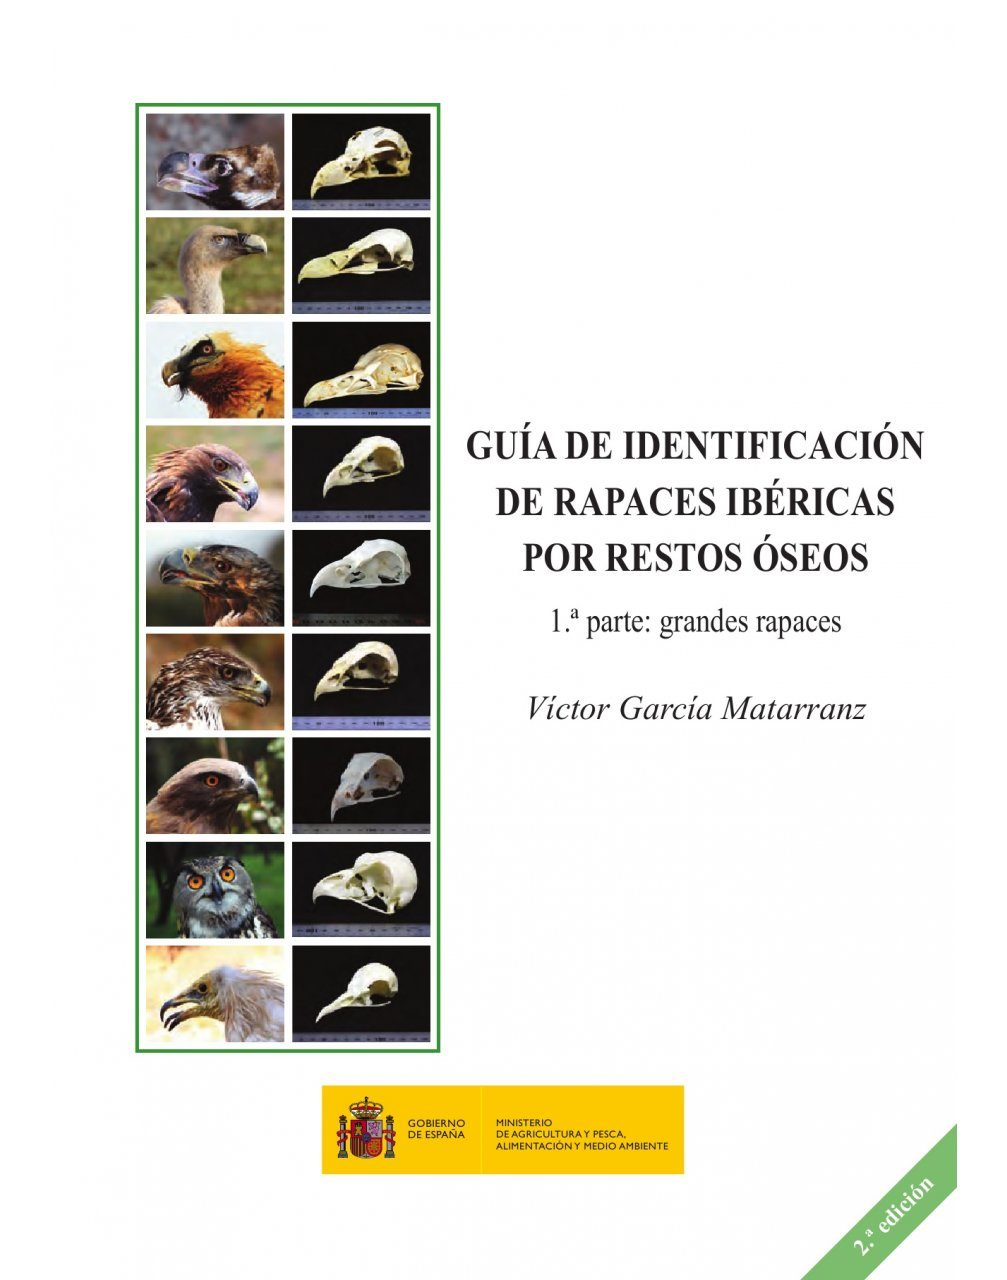 Guía de Identificación de Rapaces Ibéricas por Restos Óseos, 1ª Parte: Grandes Rapaces [Identification Guide to Iberian Raptors Using Skeletal Remains, Part 1: Large Raptors]